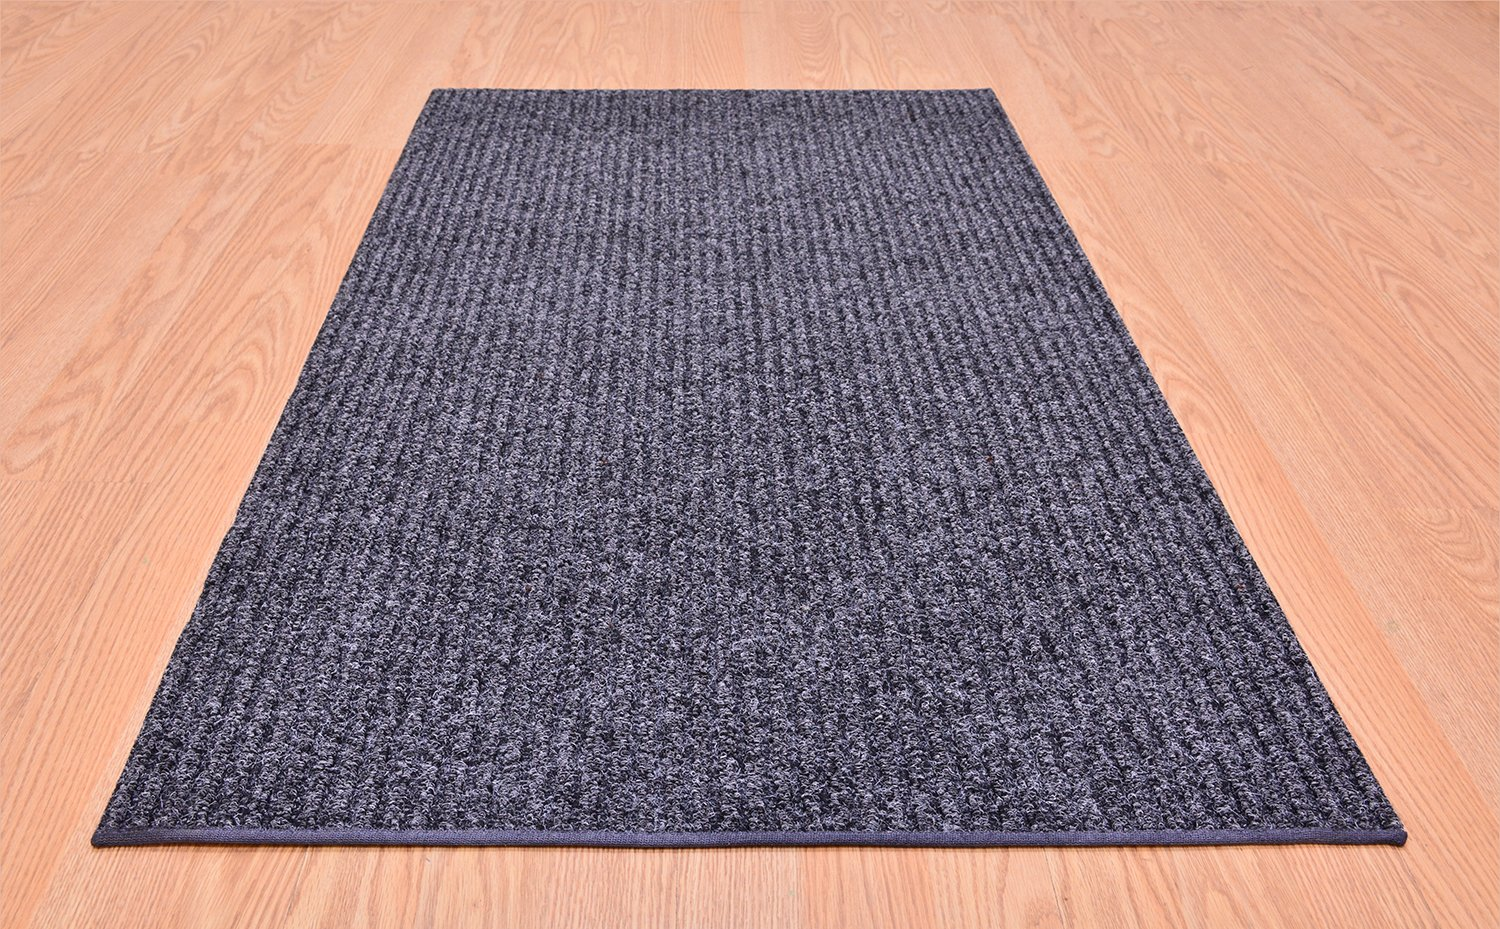 ... Size Roll Runner Grey 27 In Or 36 In Wide X Your Custom Length Choice  By Feet Slip Skid Resistant Rubber Back Area Rugs And Runners Commercial  Grade ...